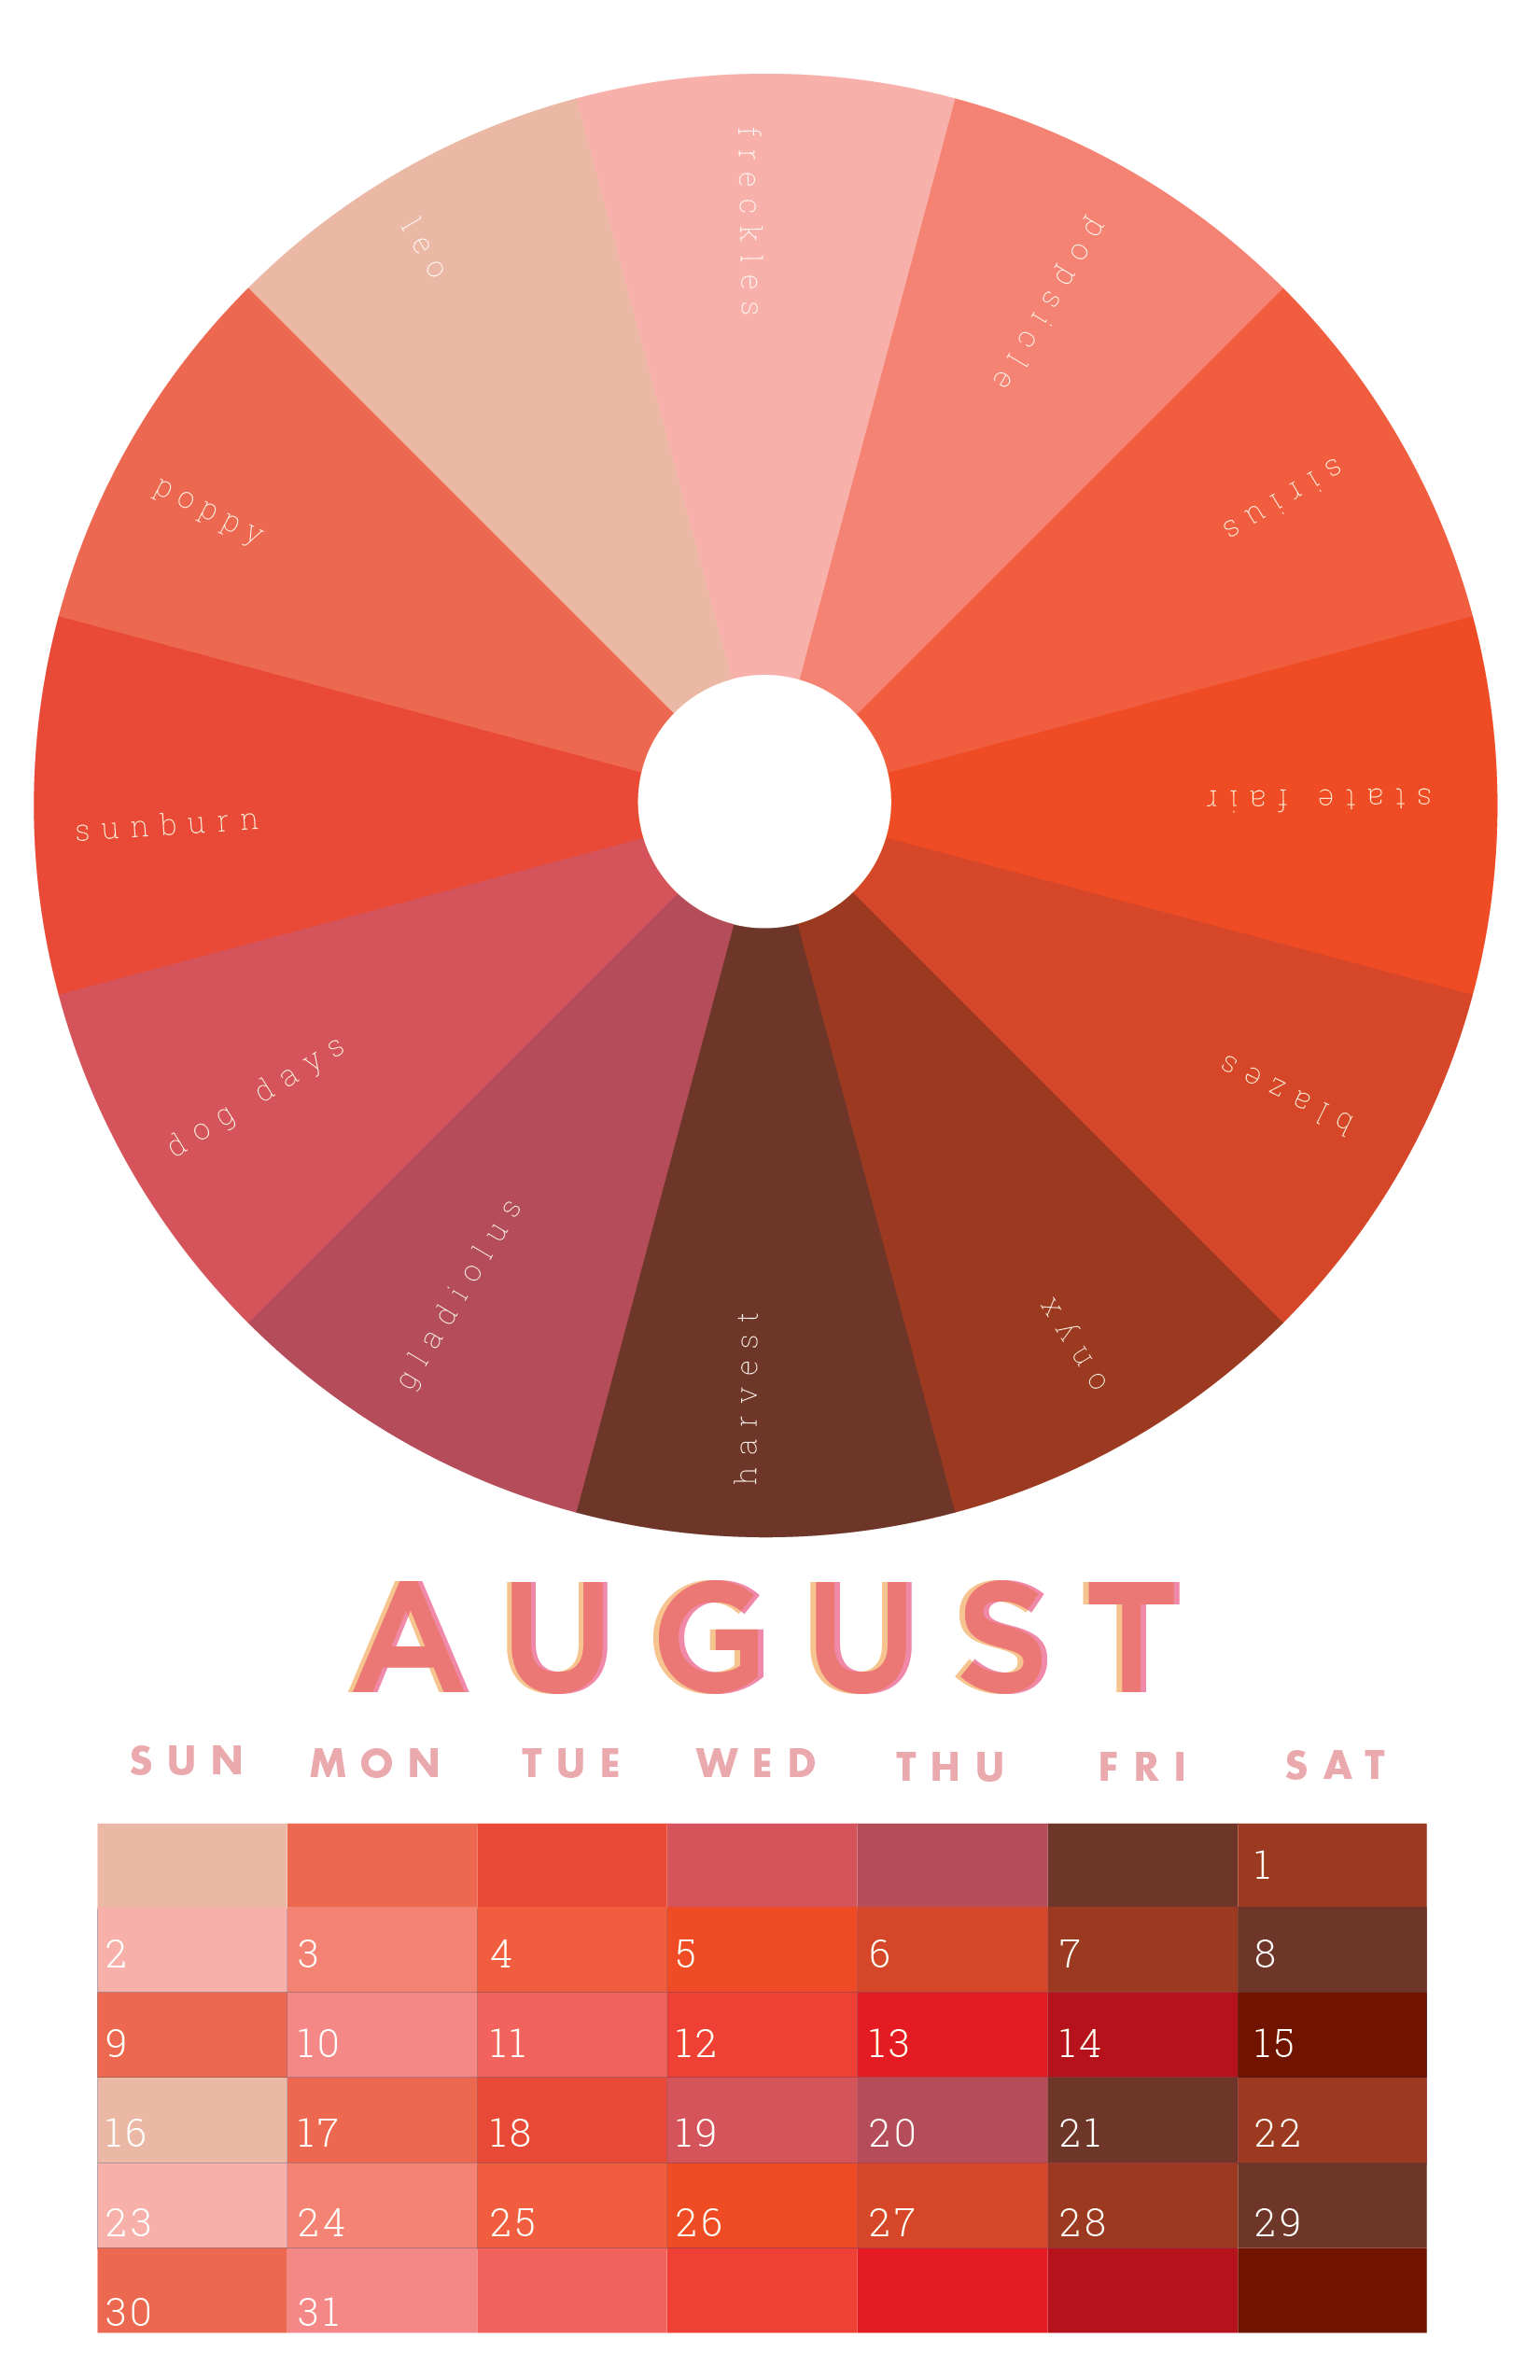 The colors of August | August colors, January colors